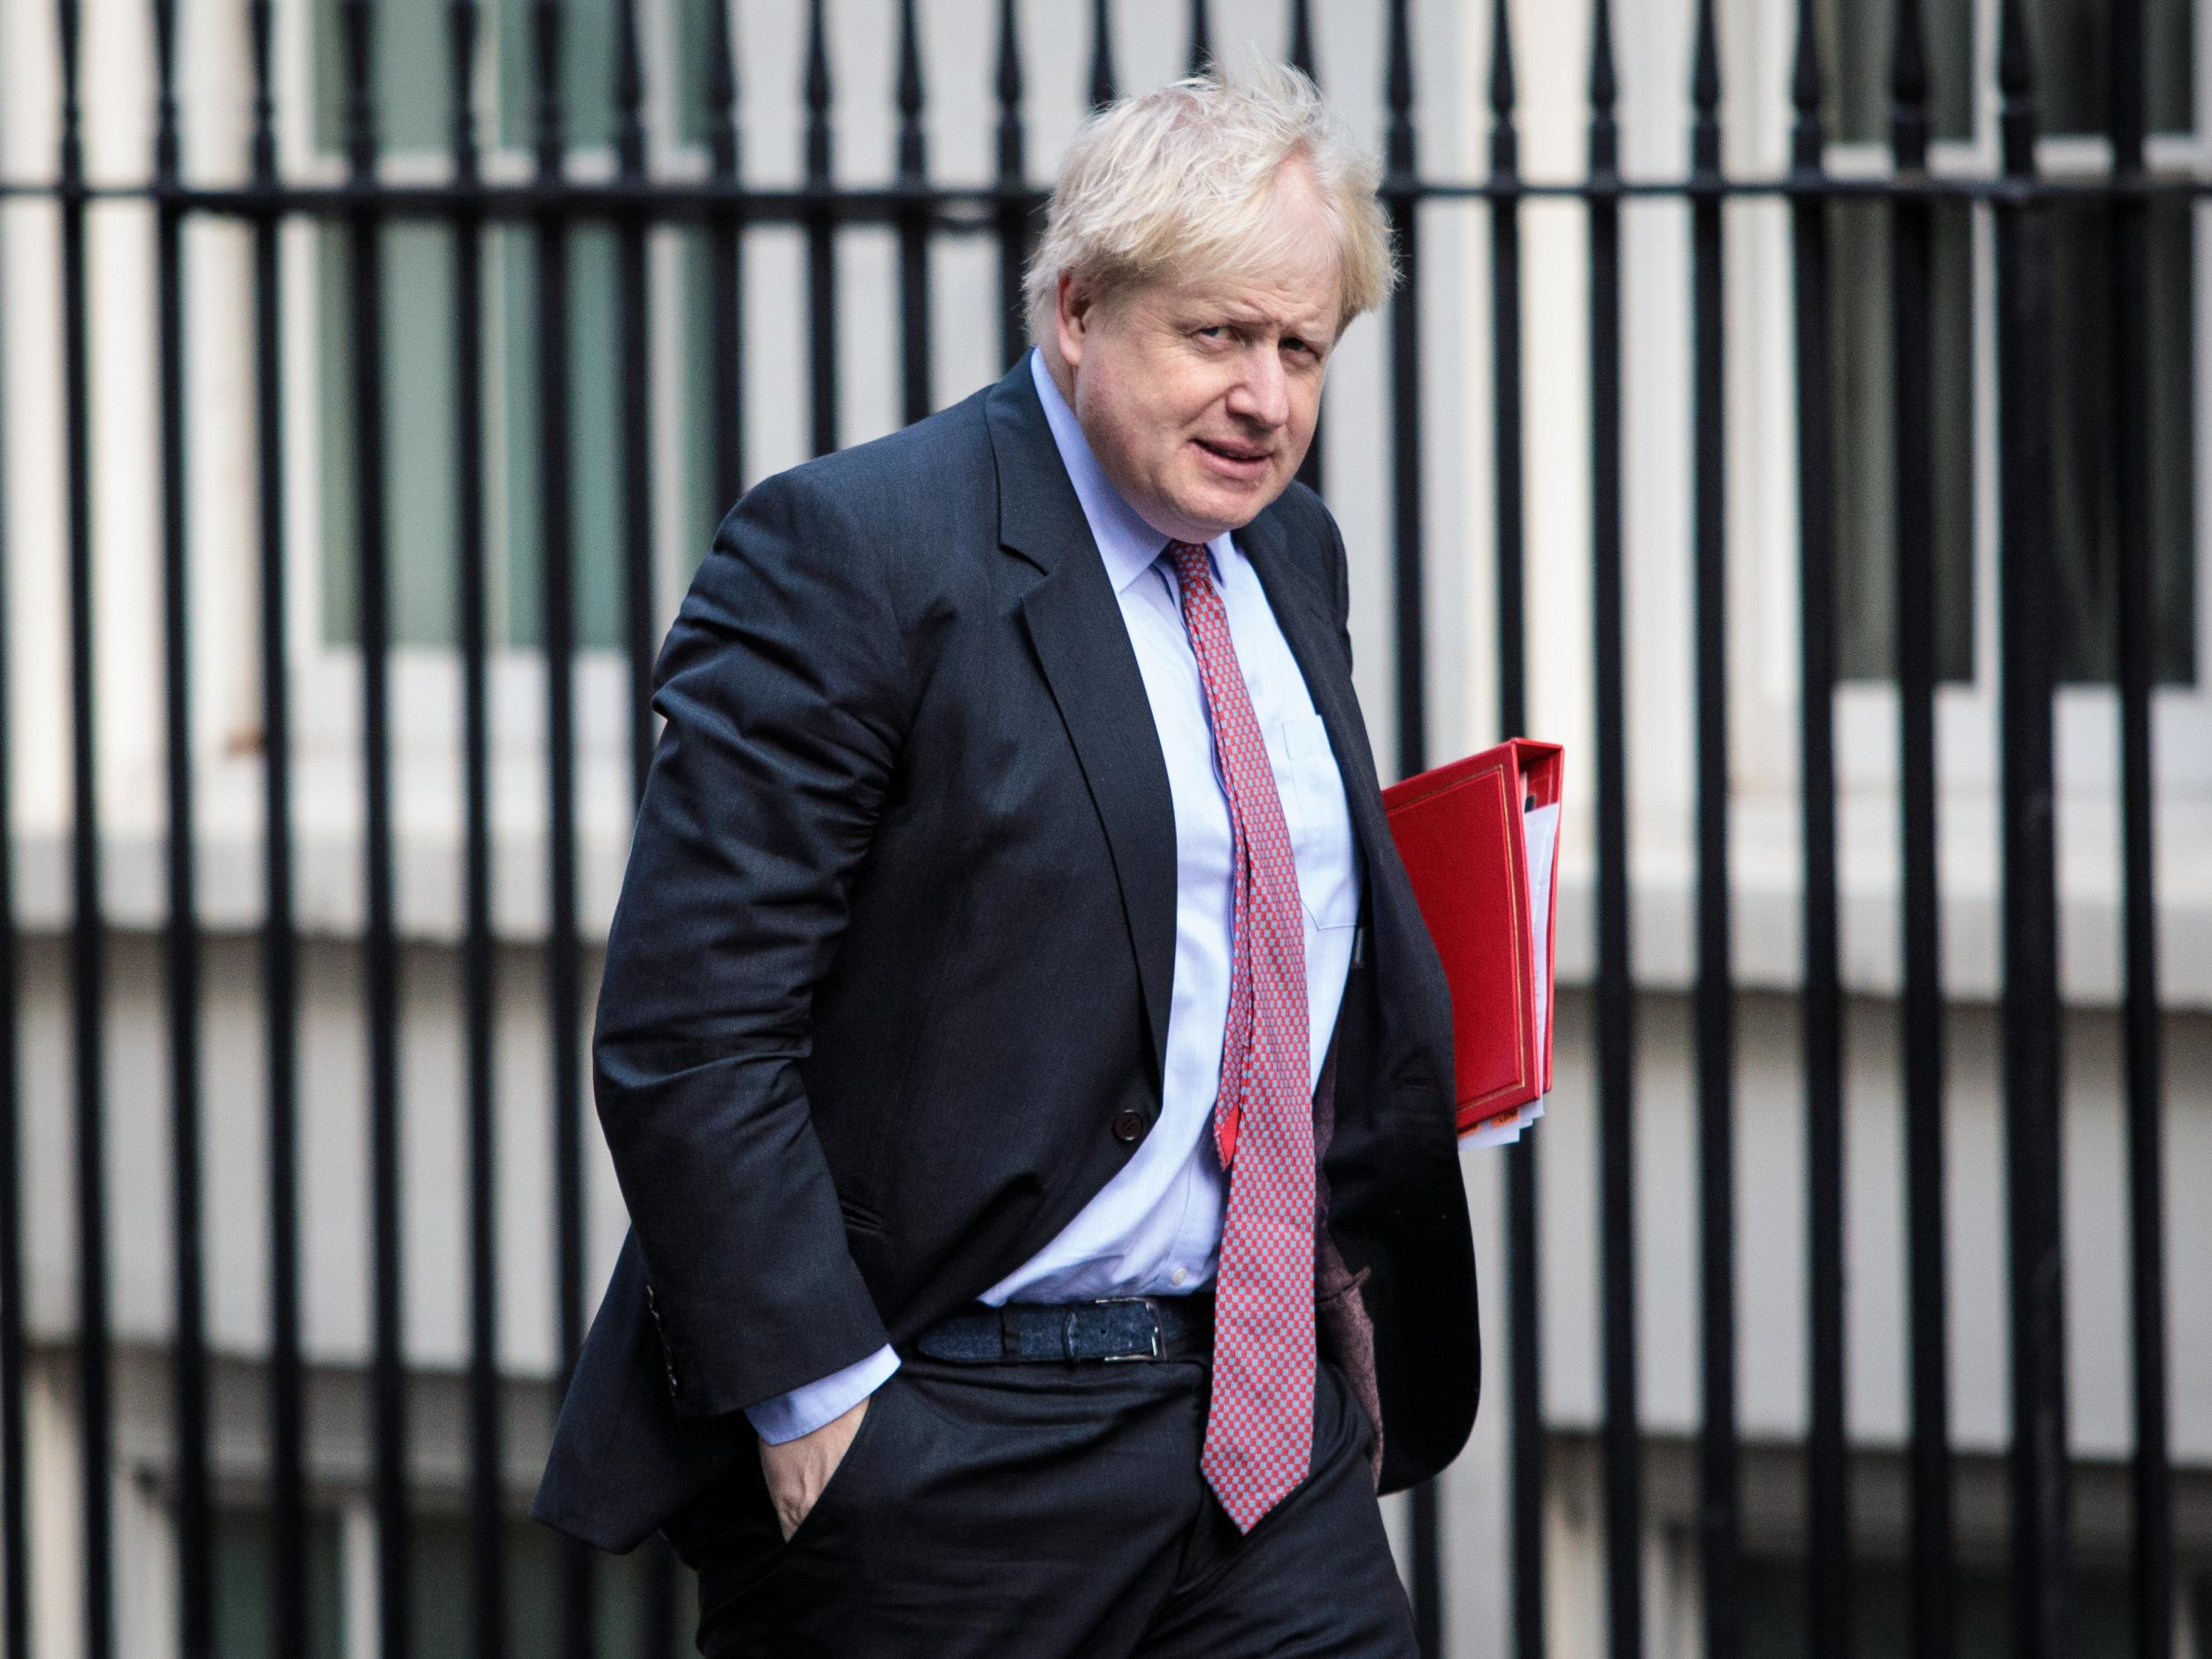 Islam, Islamophobia, Boris Johnson